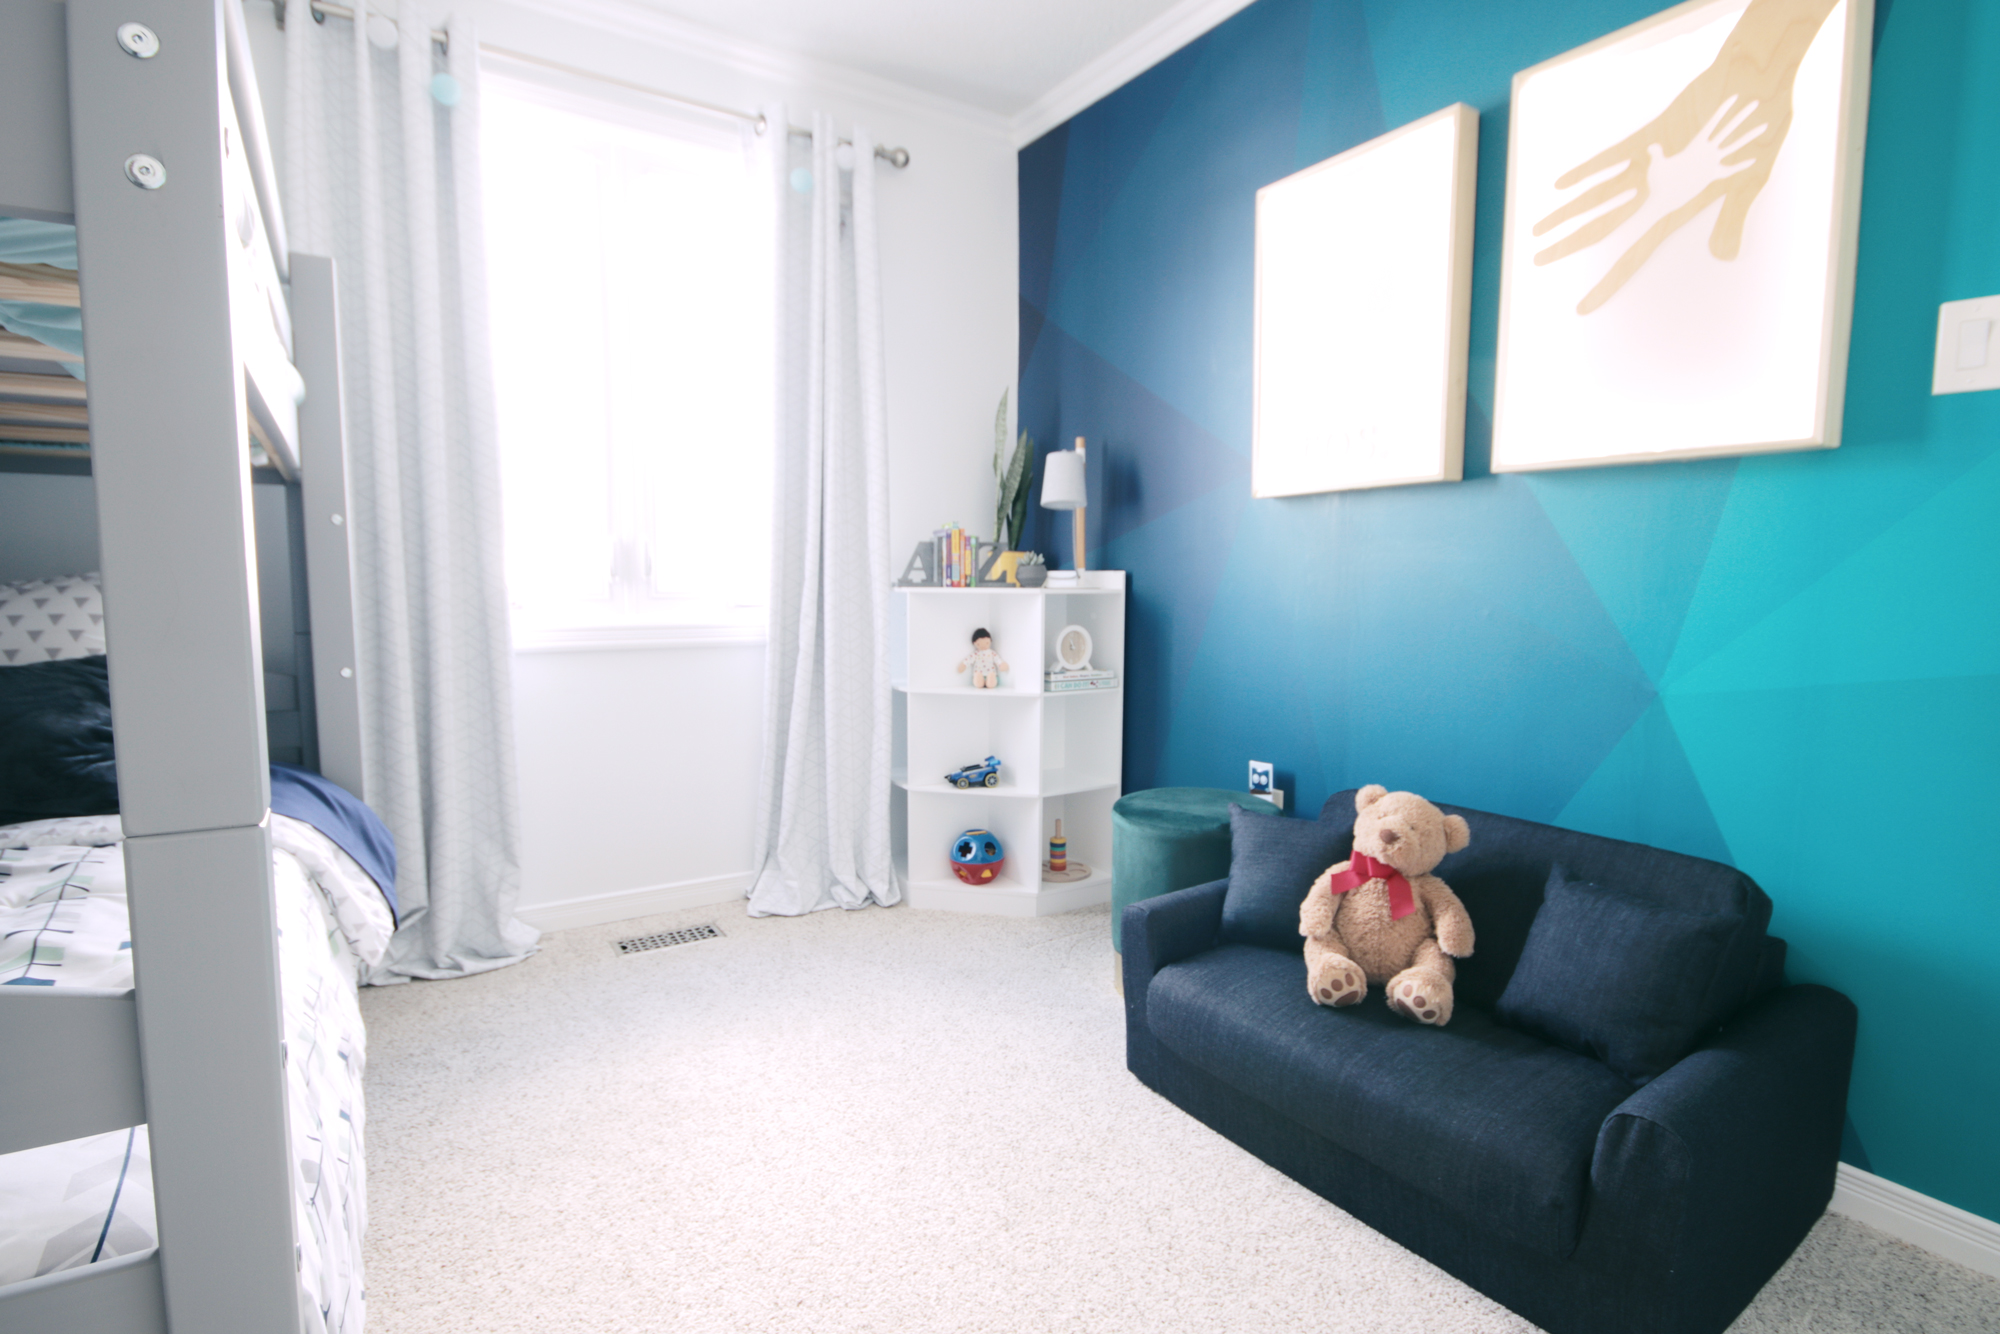 A bold wallpaper mural in jewel tone blues and greens add a fun pop of personality to the otherwise muted tones of this boys bedroom reveal.